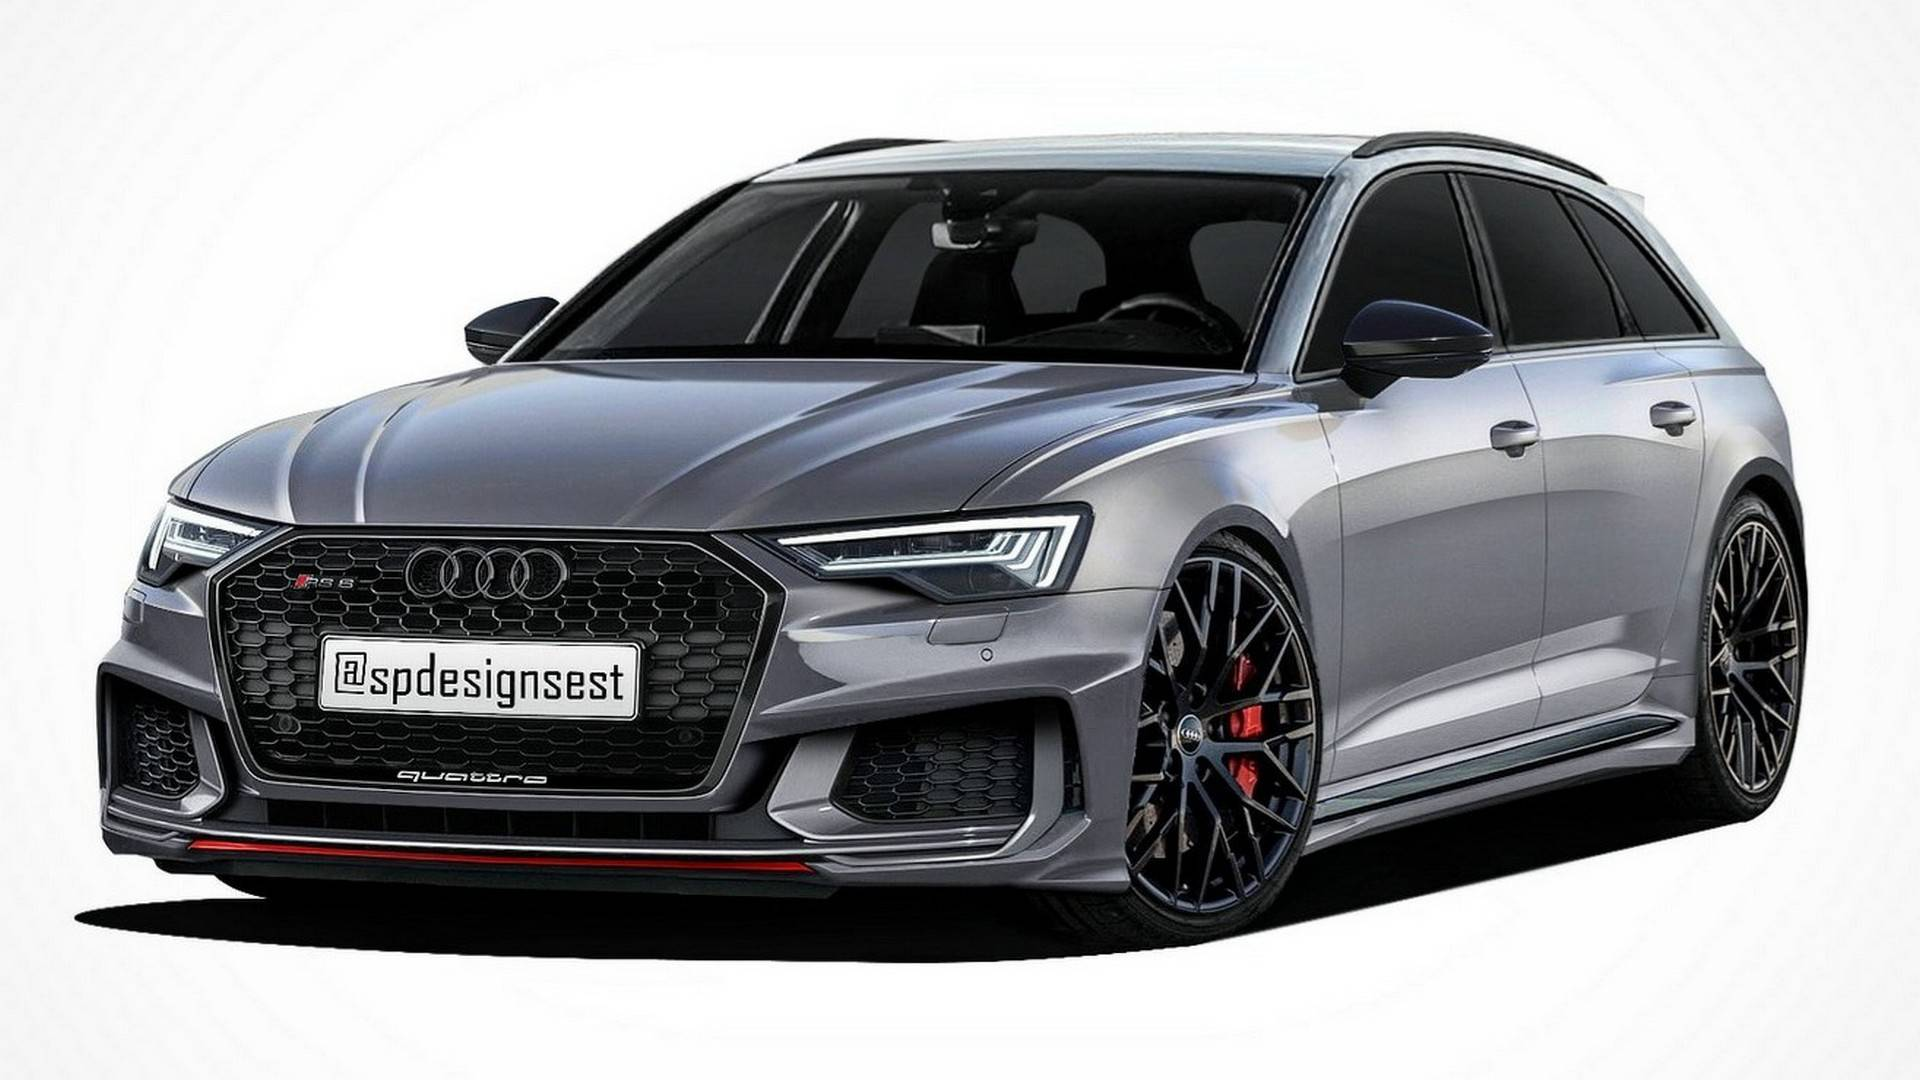 audi a6 avant a6 allroad rs6 avant renderings. Black Bedroom Furniture Sets. Home Design Ideas